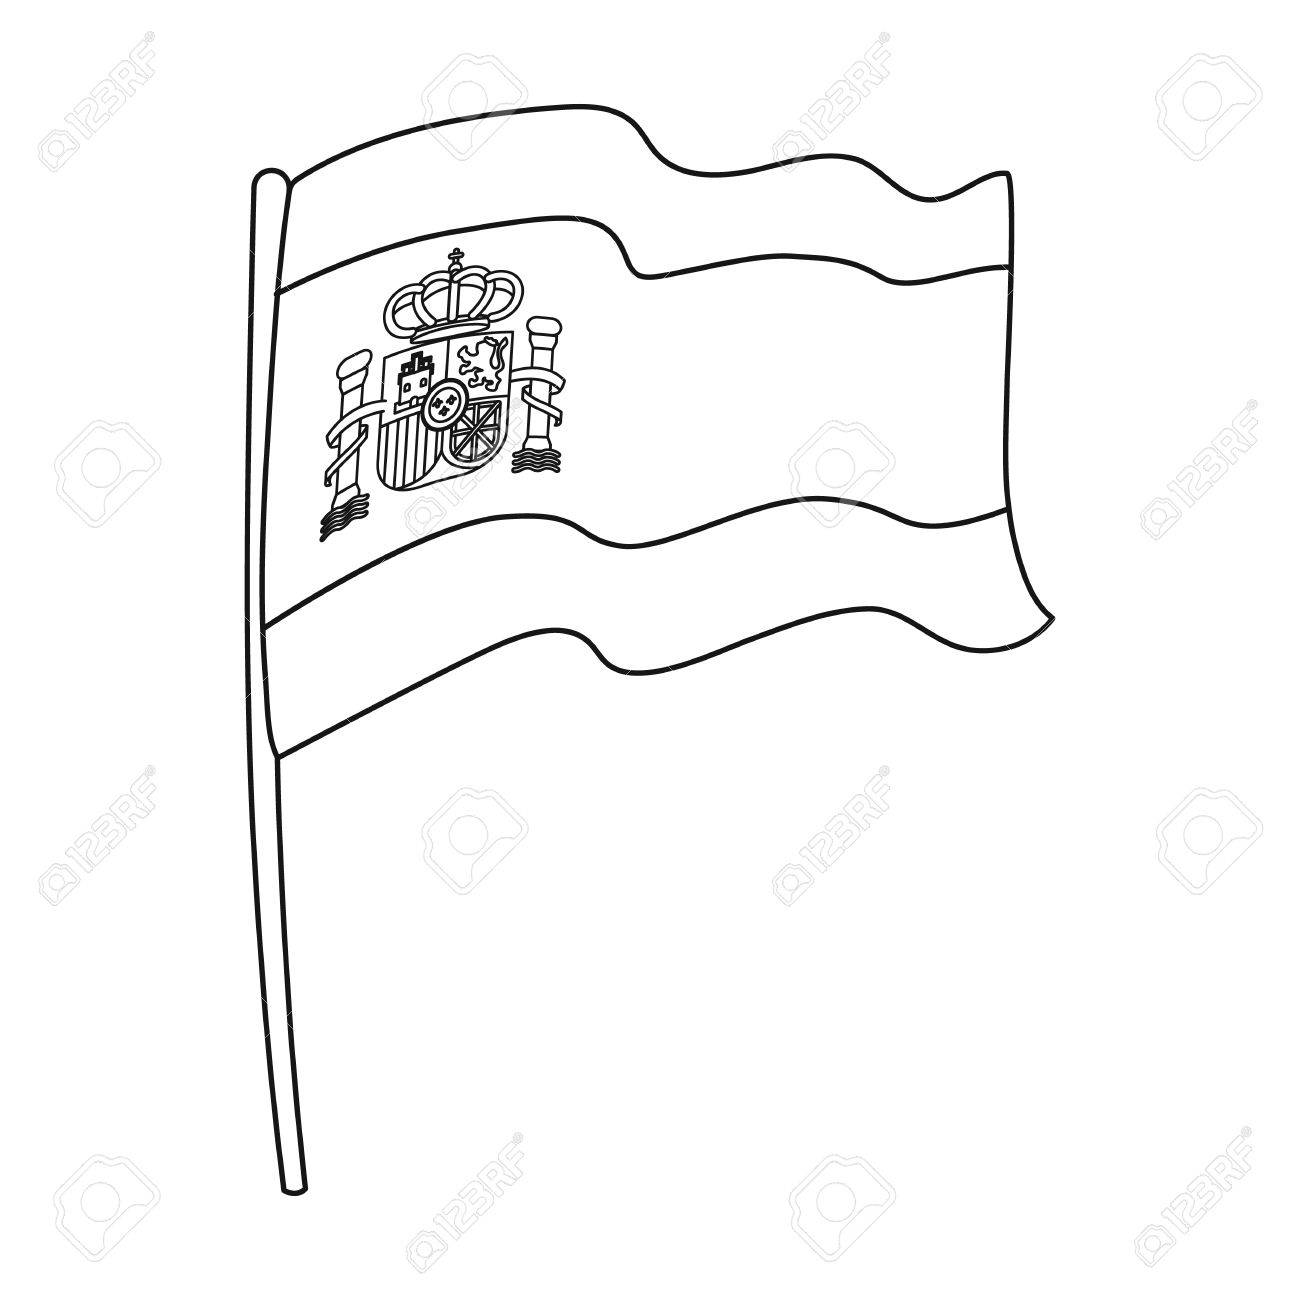 flag of spain icon in outline style isolated on white background USA Country Outline flag of spain icon in outline style isolated on white background spain country symbol stock